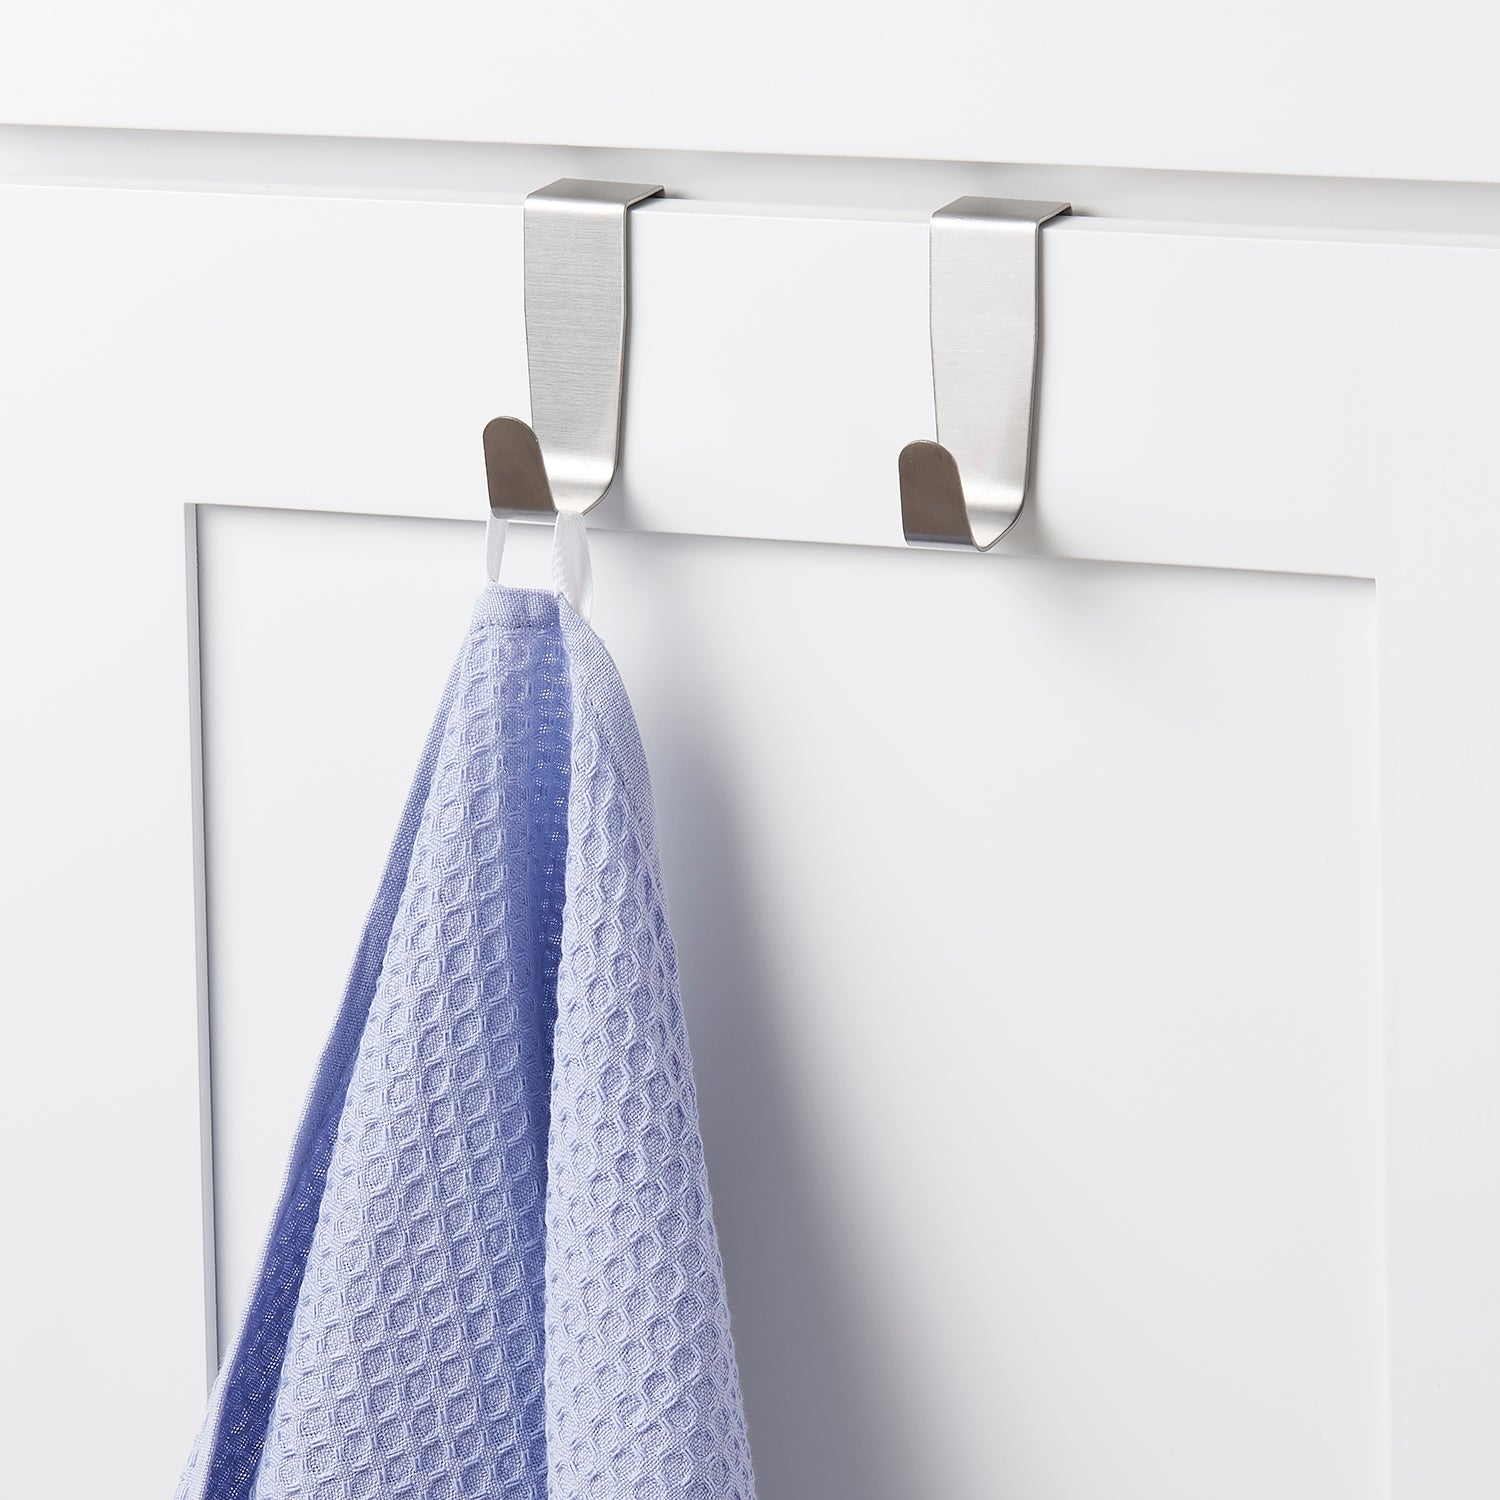 Over the Cabinet Door Single Hook Set of 2